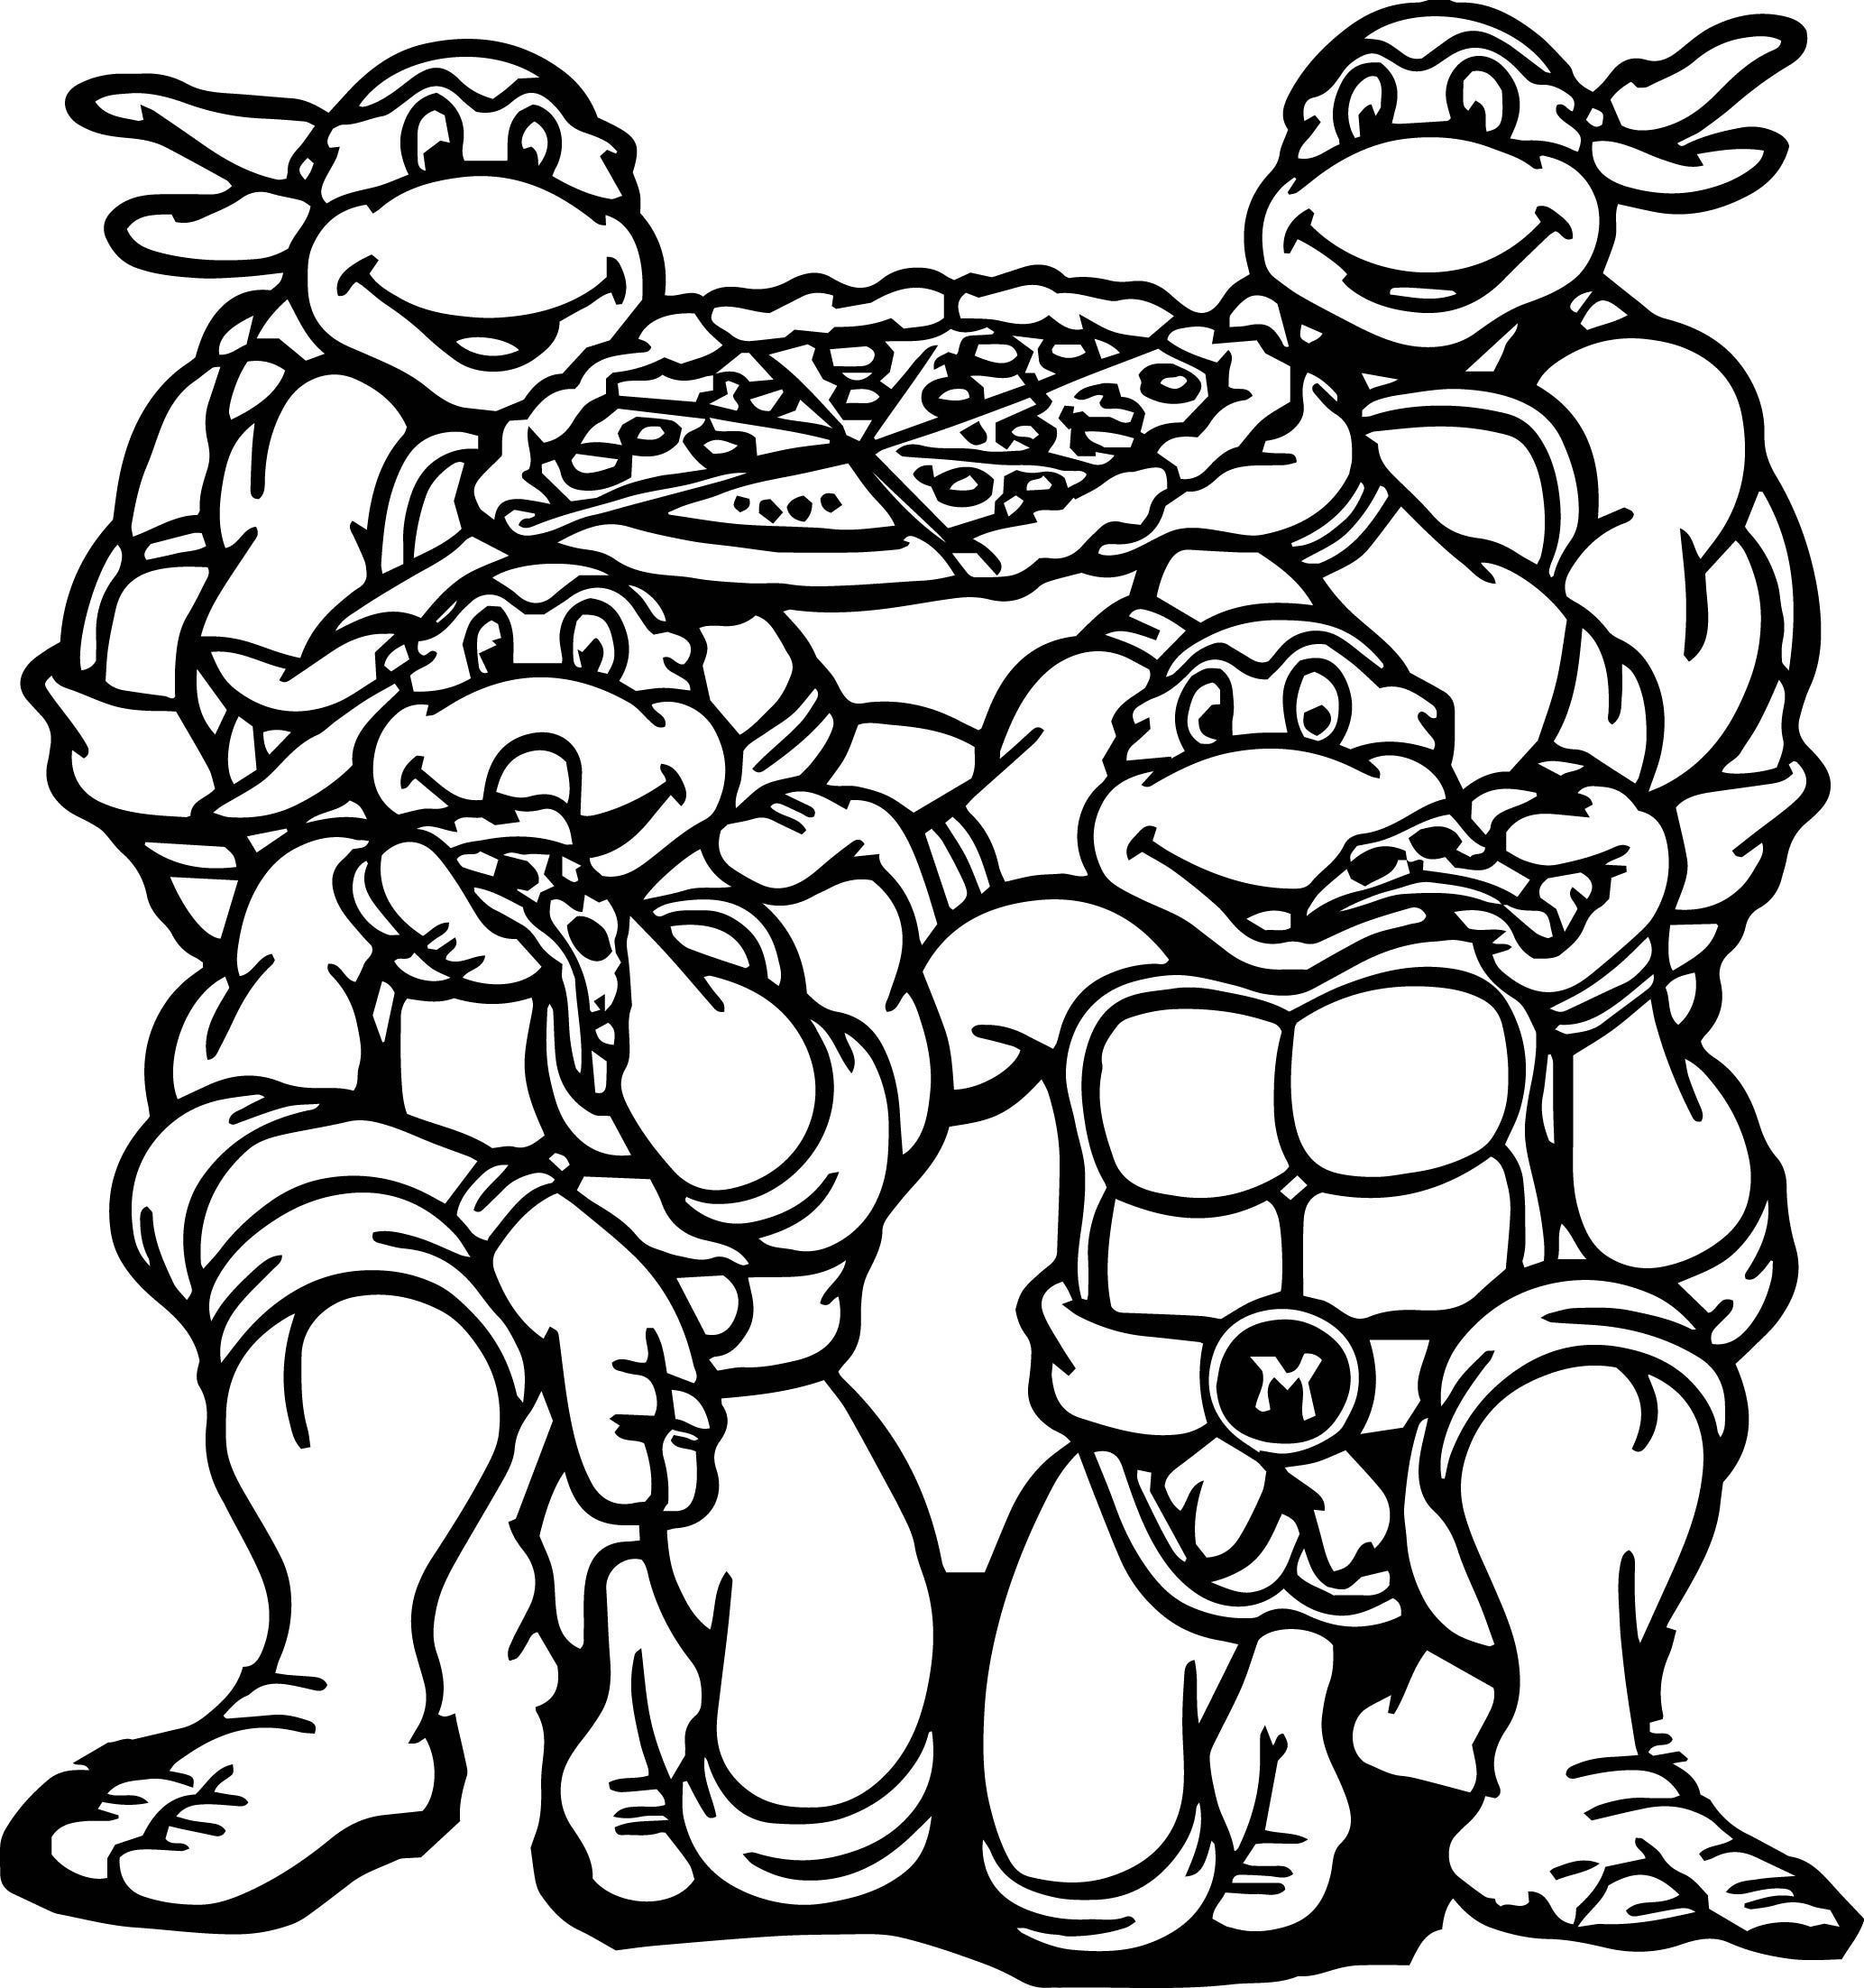 tmnt pictures to color teenage mutant ninja turtles coloring pages best pictures color tmnt to